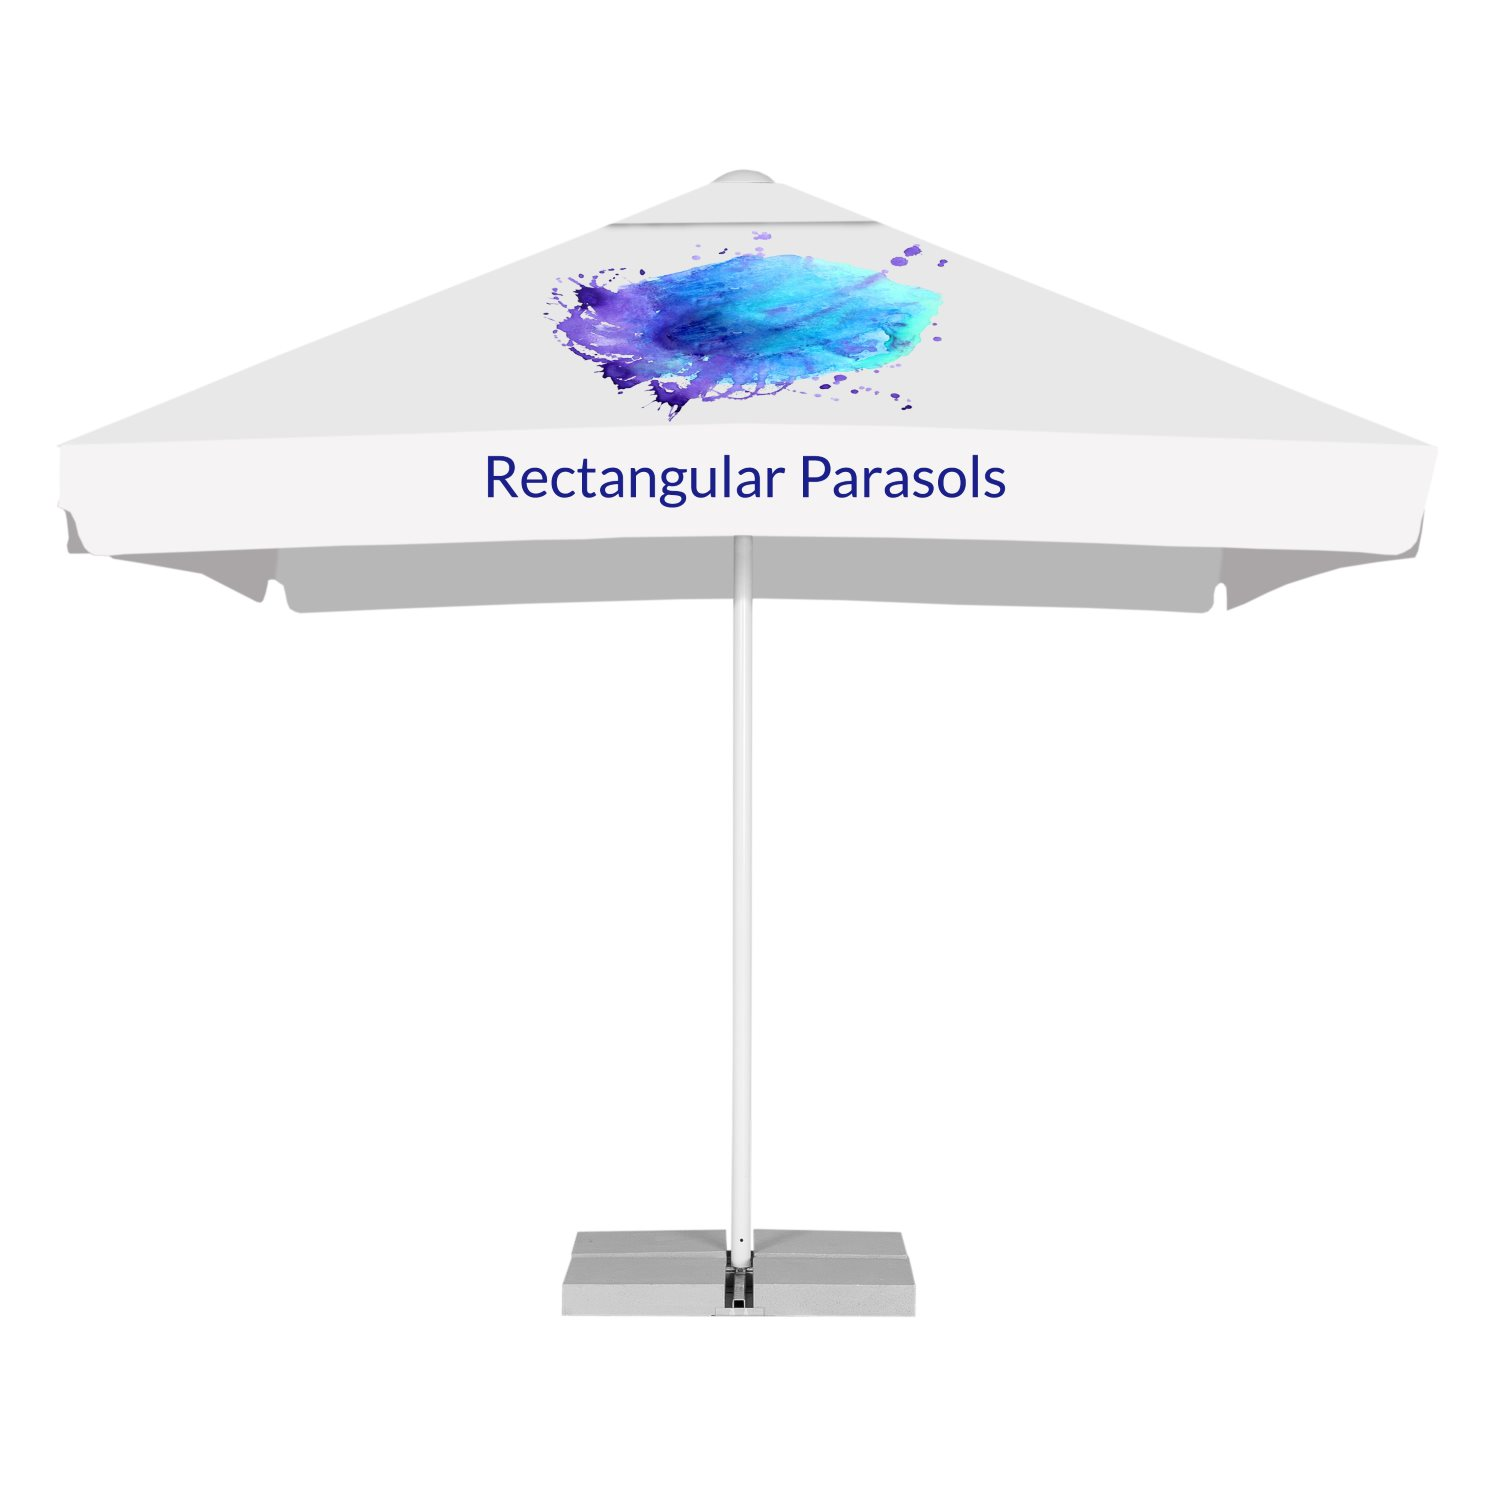 2. Rectangular advertising parasols